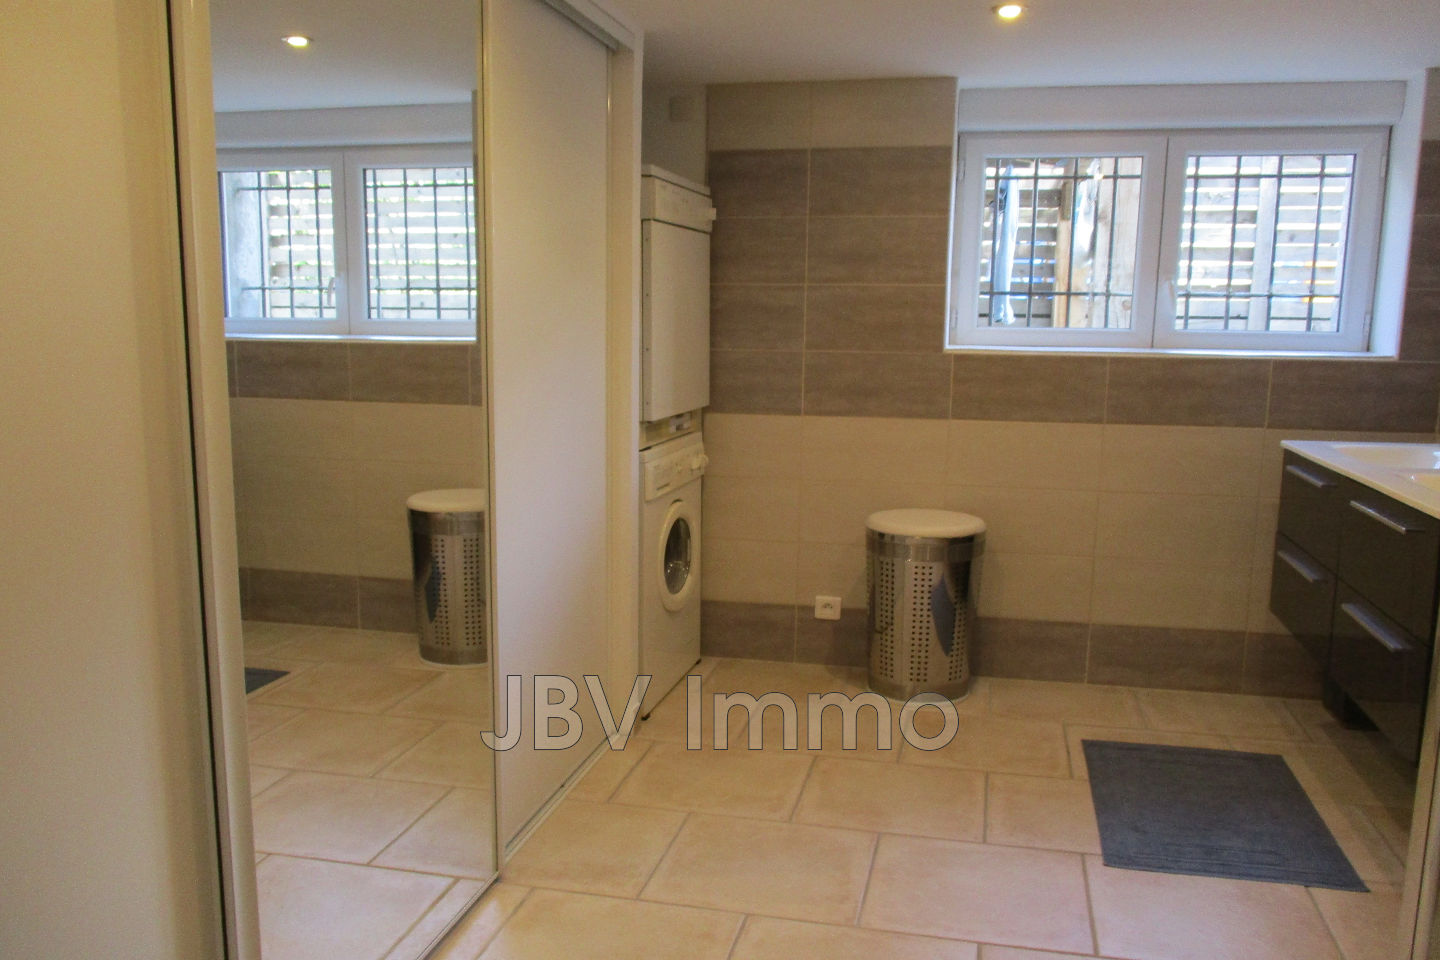 Townhouse Alès to buy townhouse 3 bedrooms 142 m²